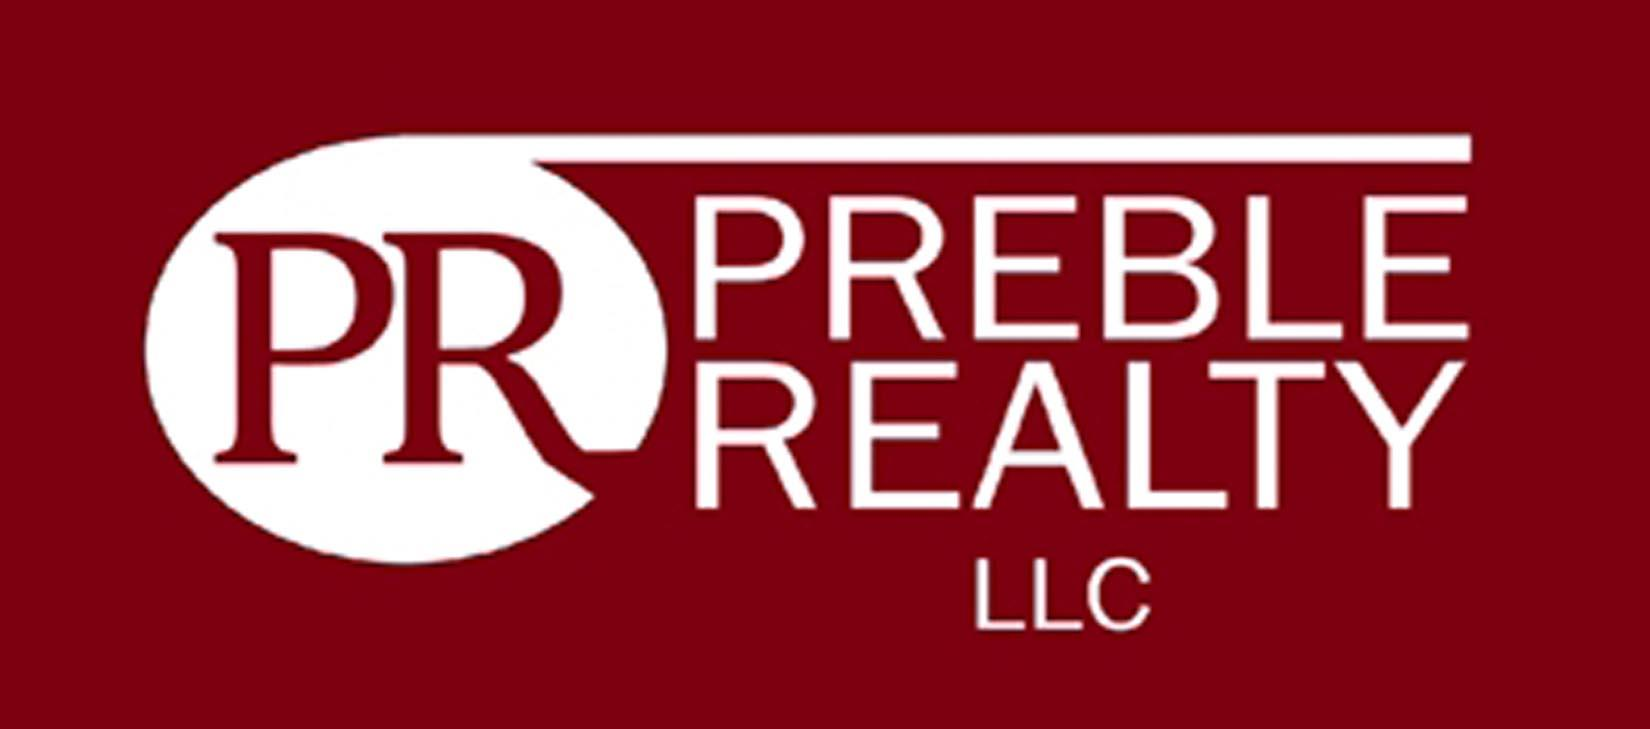 Preble Realty LLC